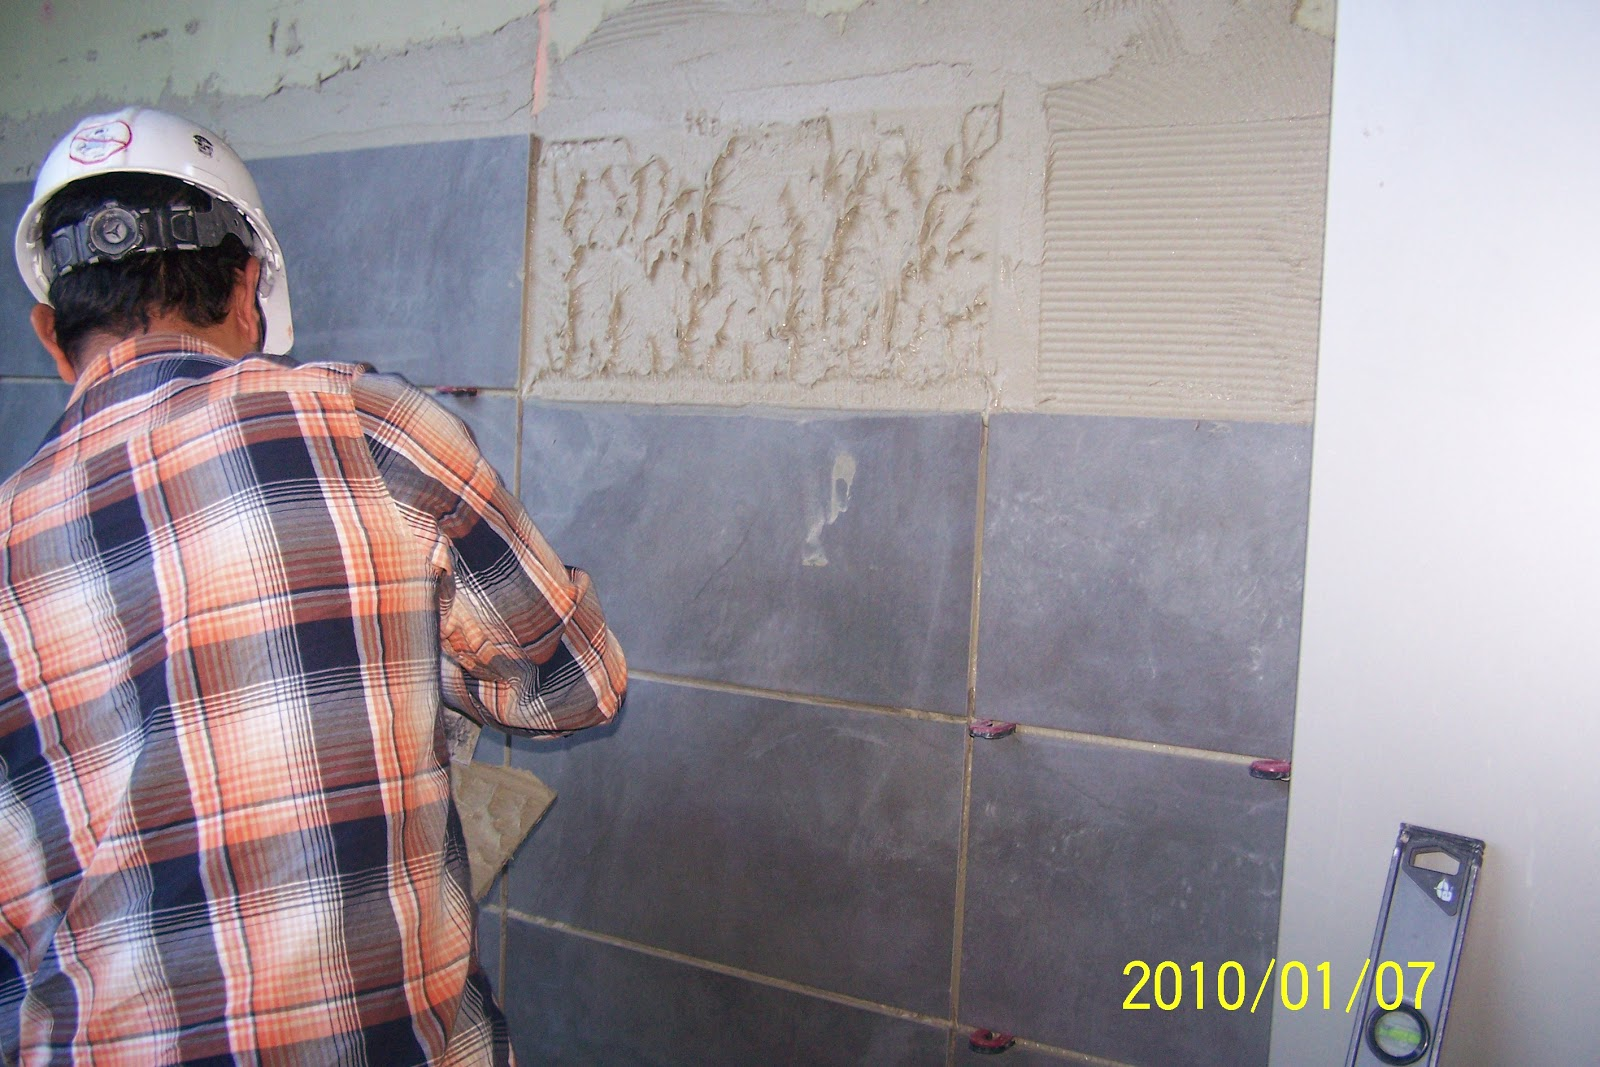 Man working on tile installation project as a contractor.